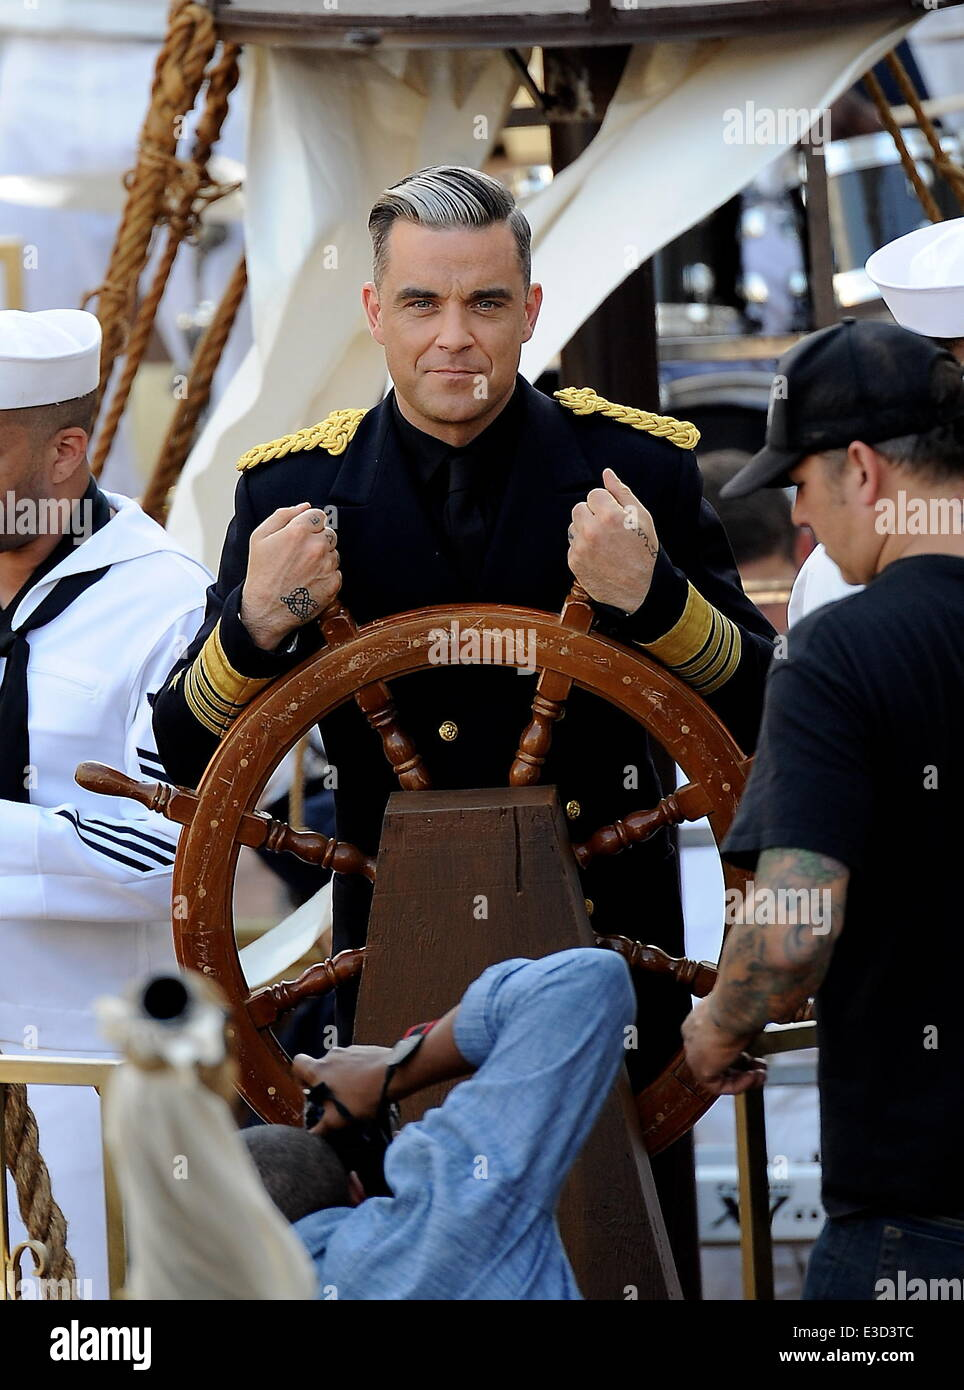 Robbie Williams filming a music video for his song 'Go